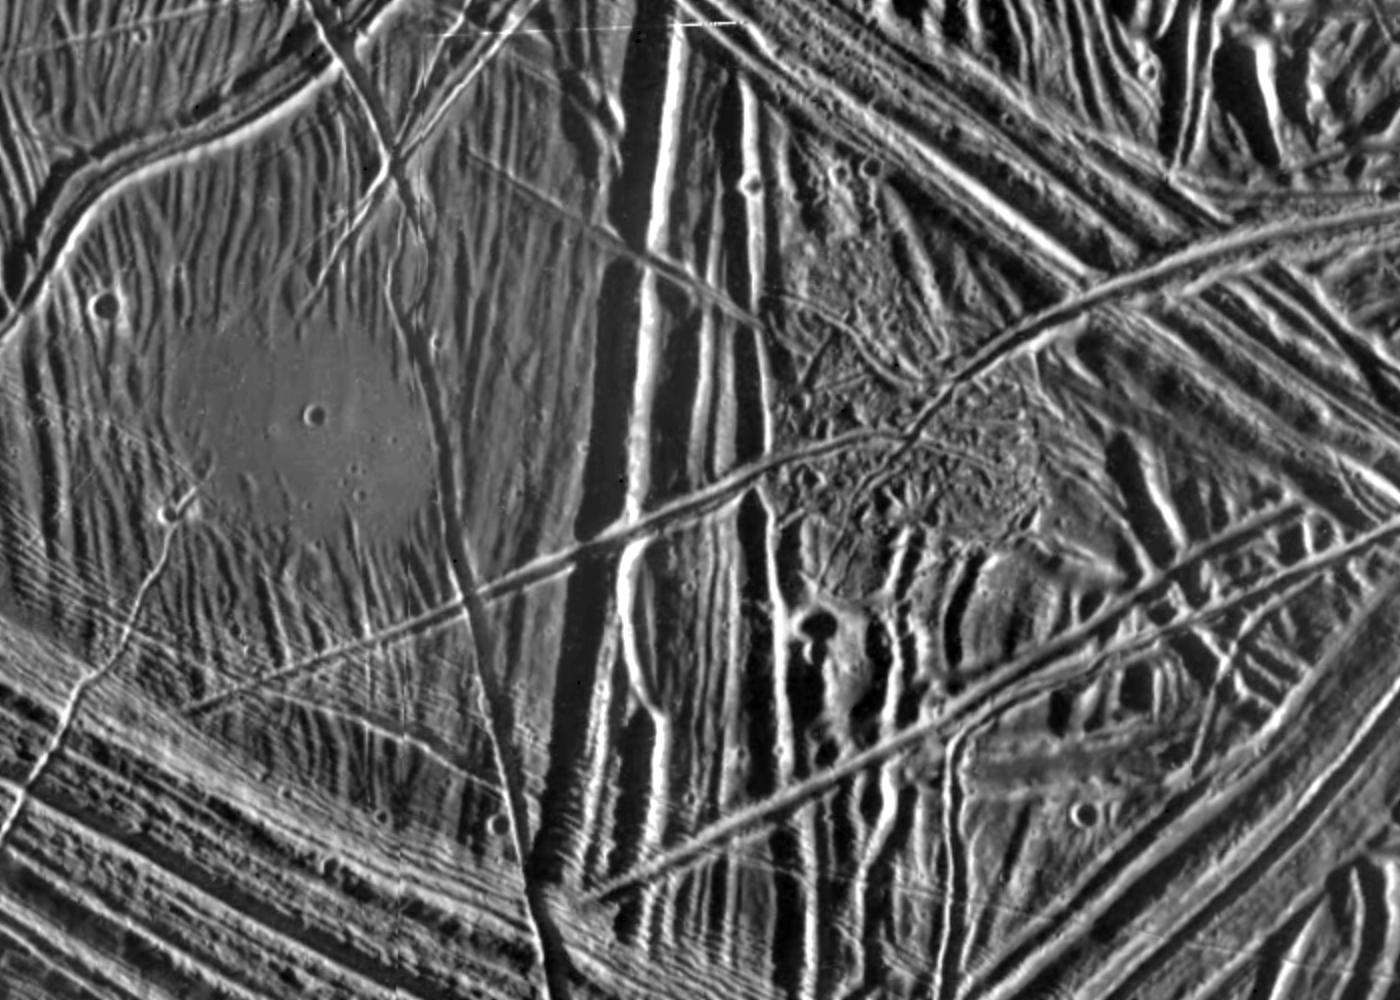 black and white view of terrain on an icy surface